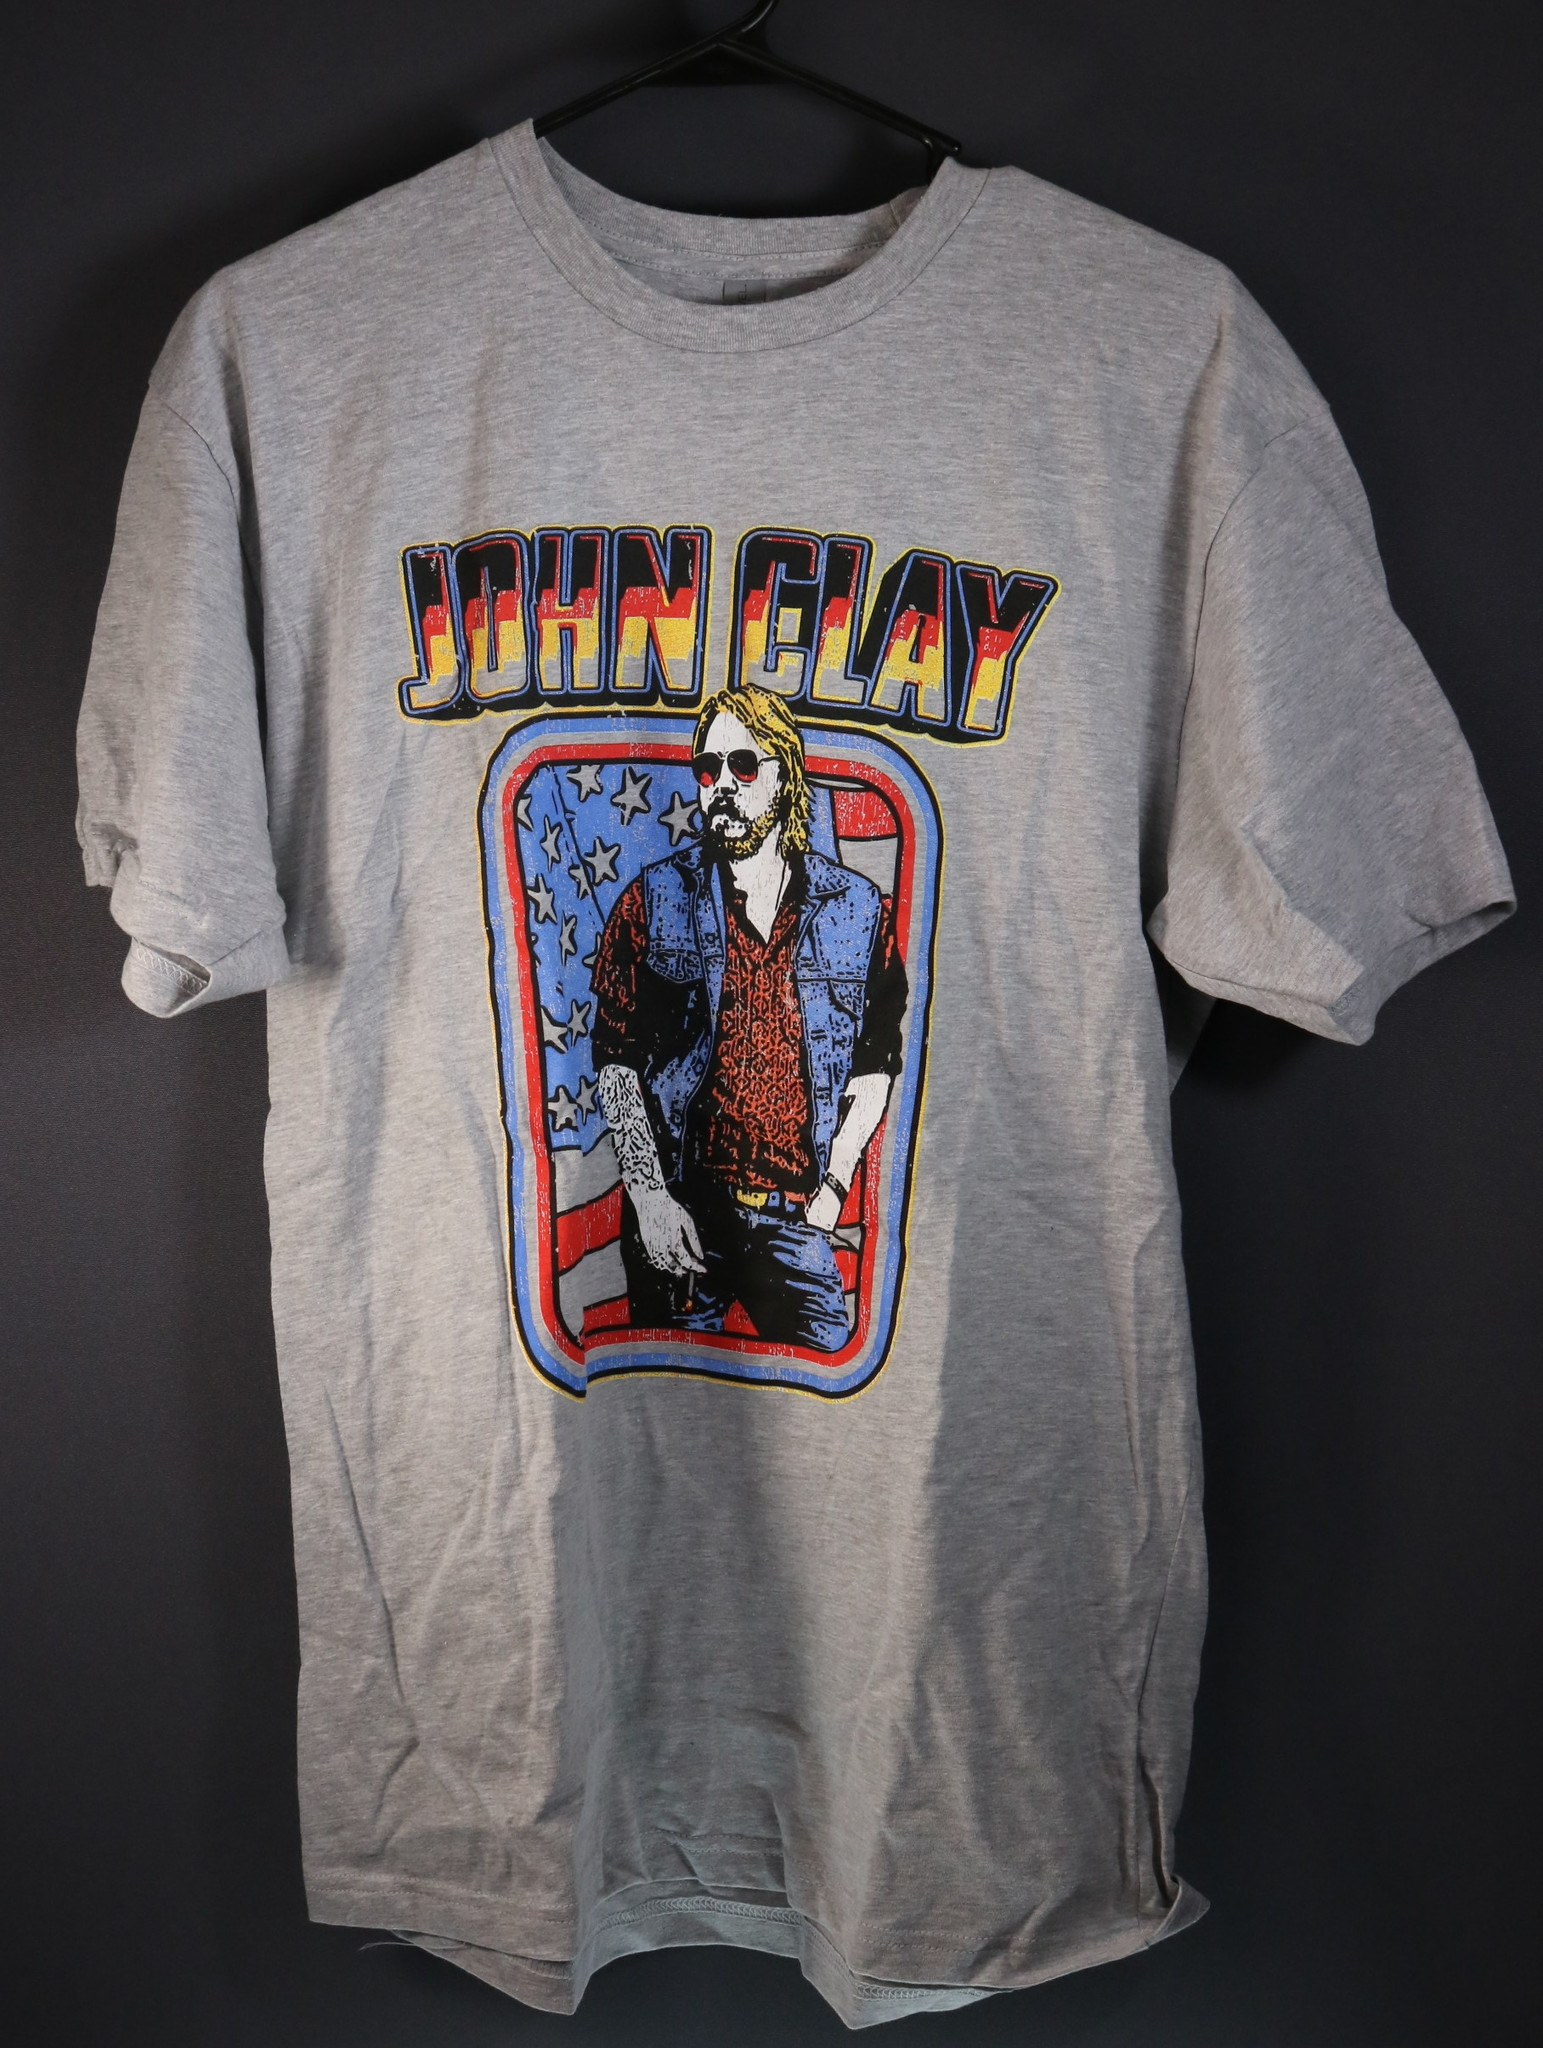 Local Music NEW John Clay T-Shirt - Medium